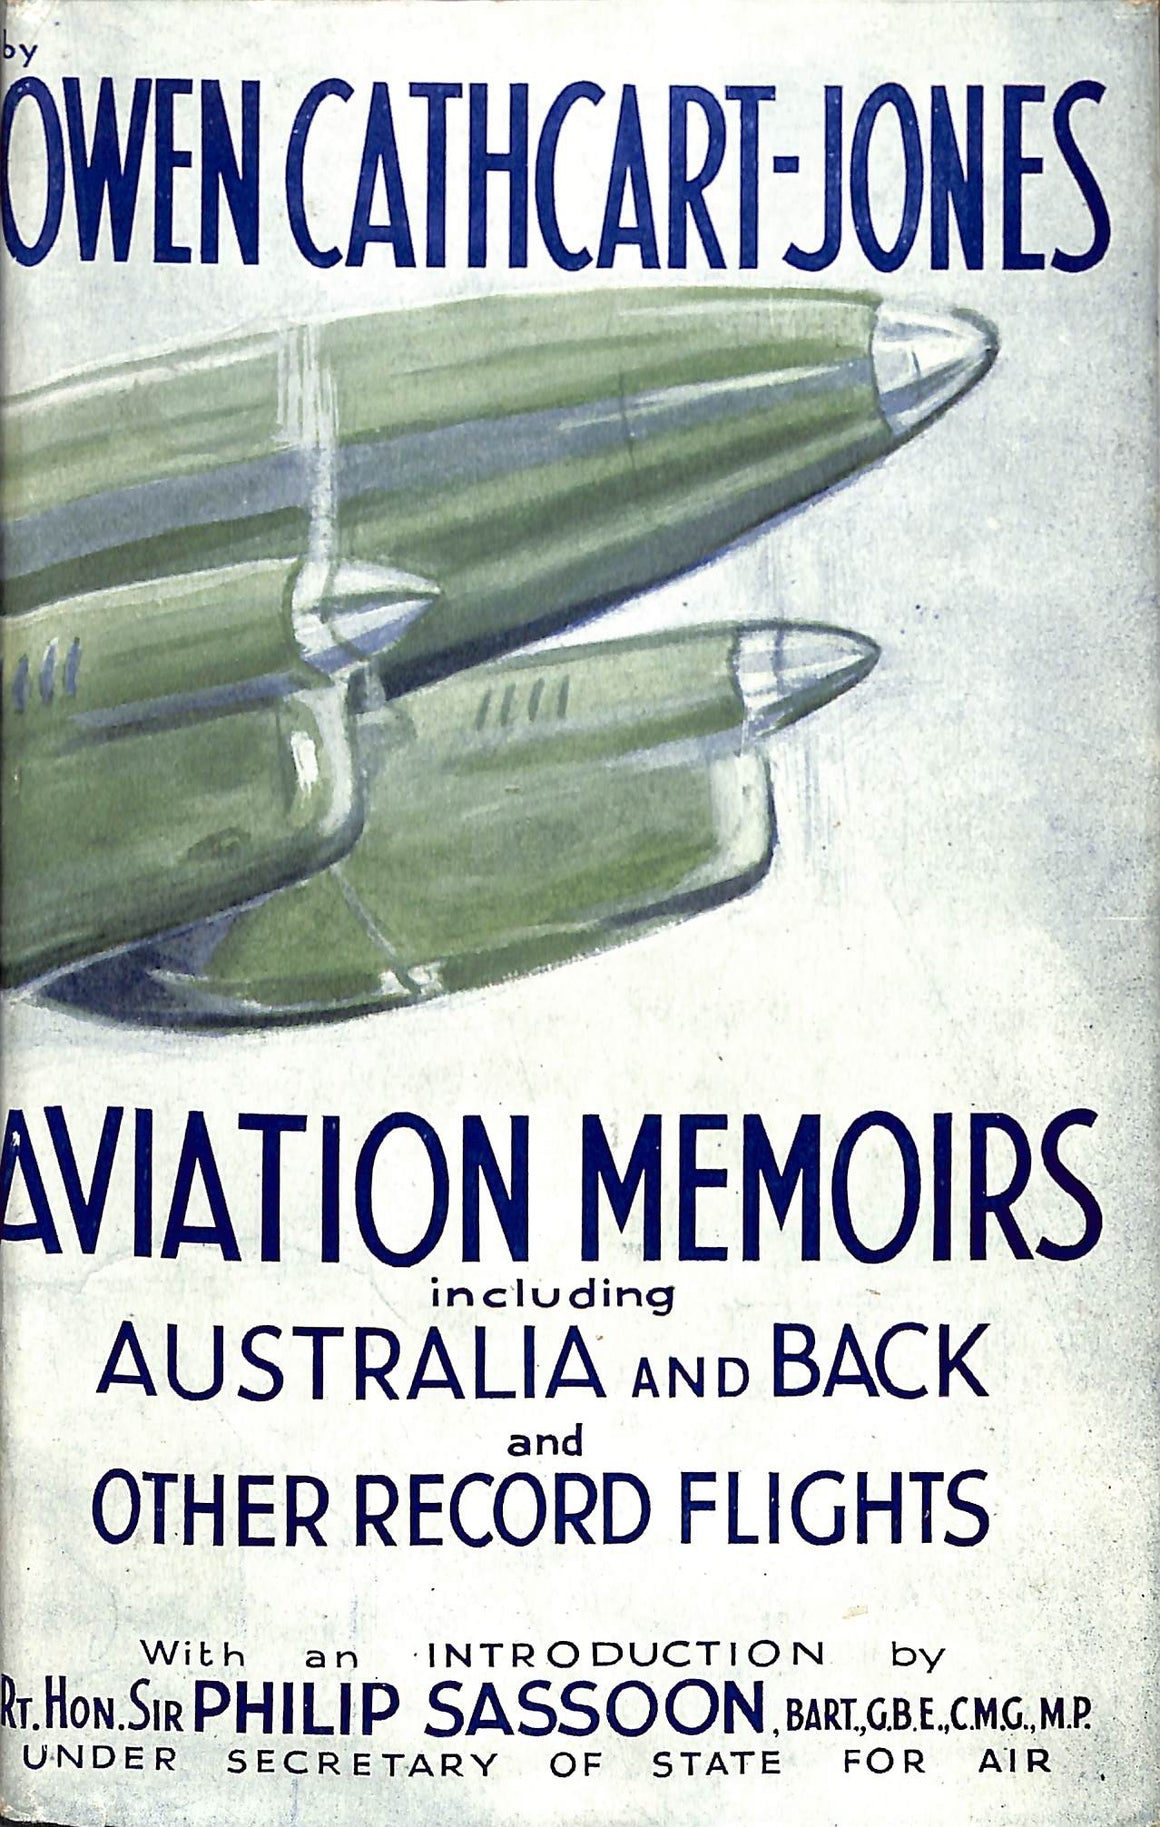 Aviation Memoirs by Owen Cathcart-Jones